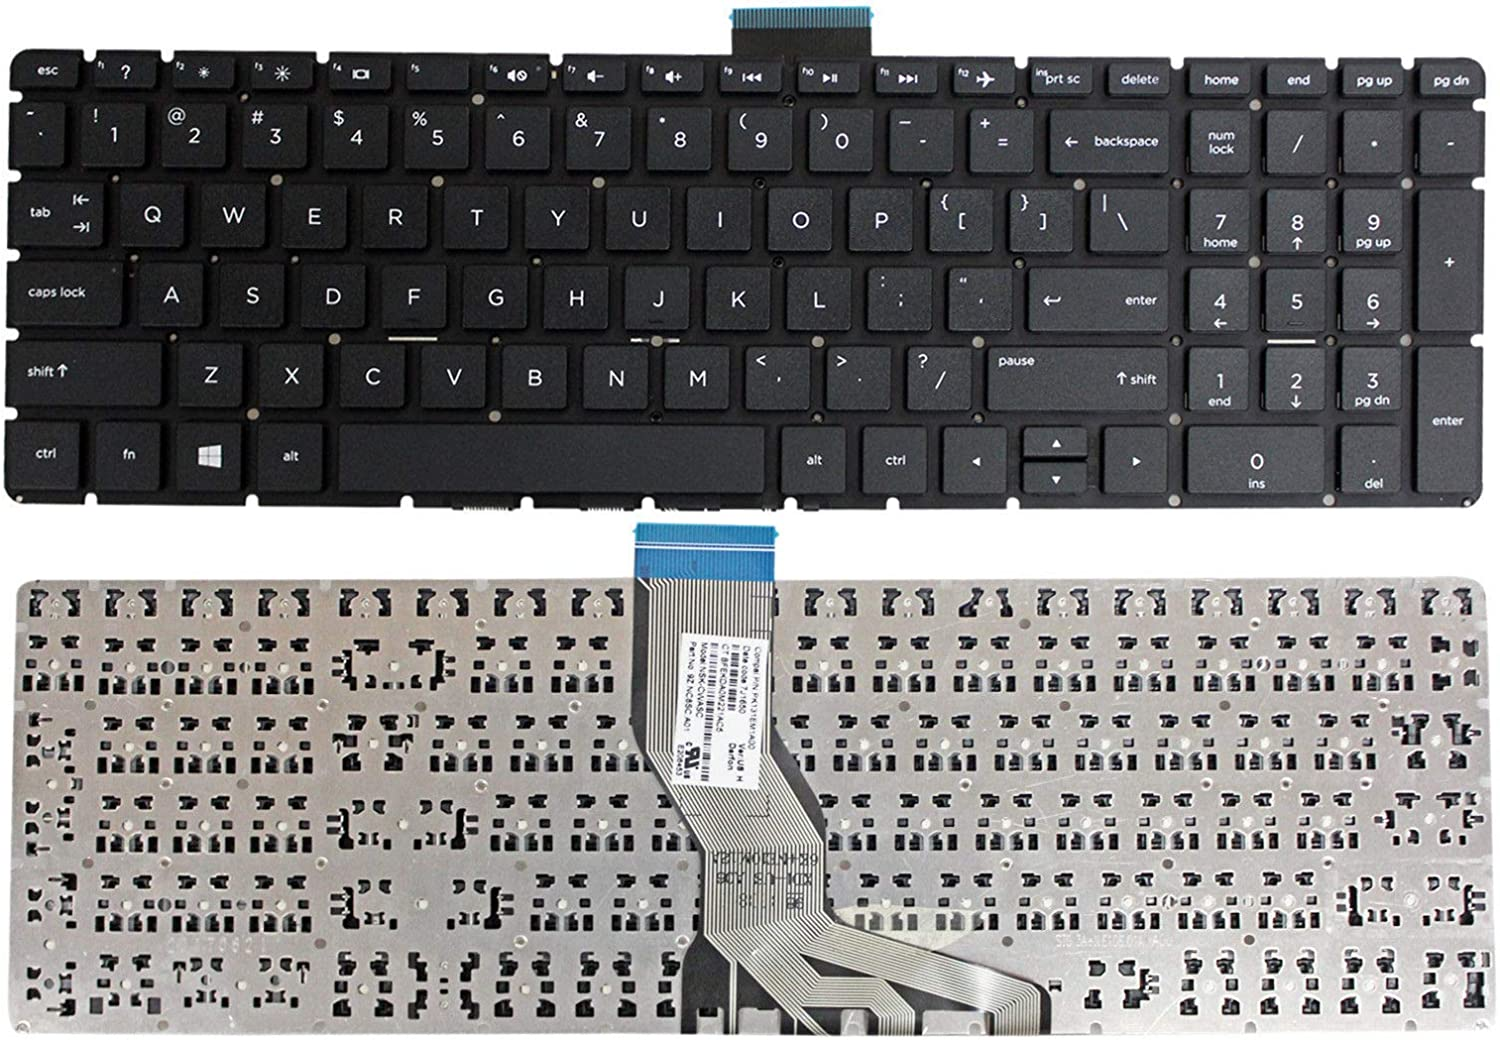 Givwizd Laptop Replacement Non-Backlit Keyboard for HP 17-by0007nm 17-by0007ns 17-by0007nv 17-by0007TX 17-by0007ur 17-BY0008CA 17-BY0008CY 17-by0008nf 17-by0008ng US Layout Silver Color